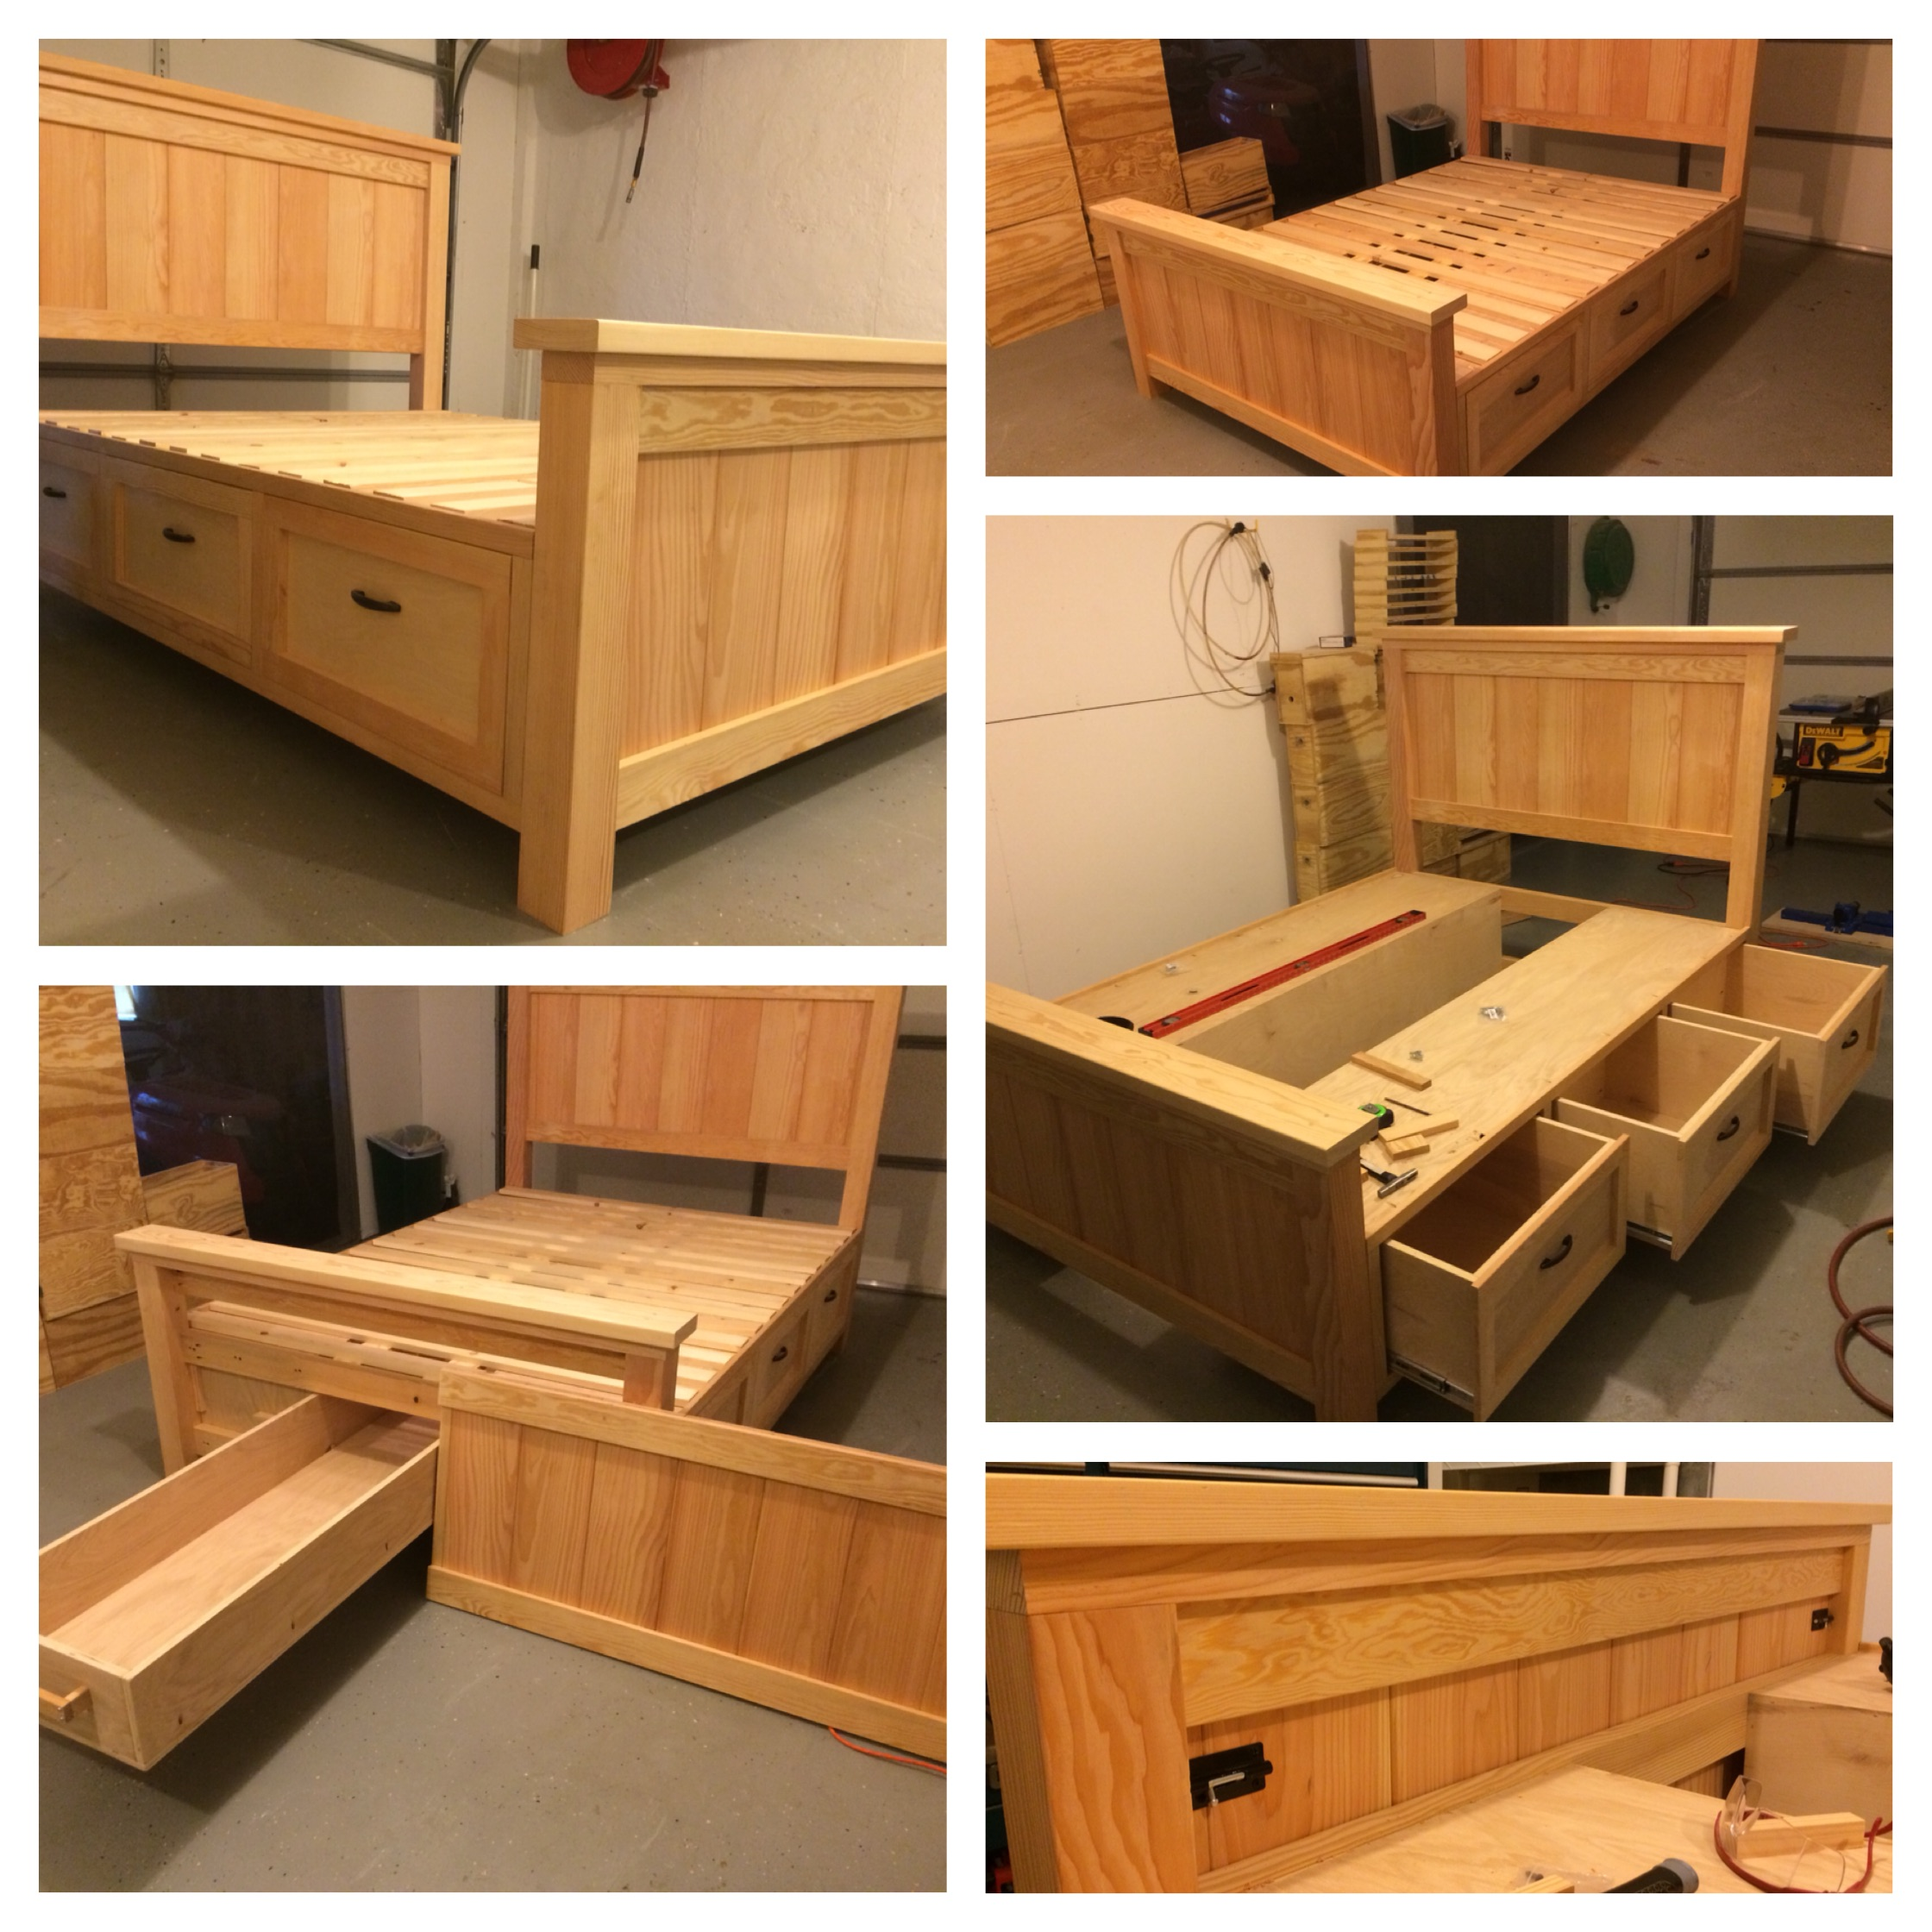 Storage bed with drawers 9 Simphome com